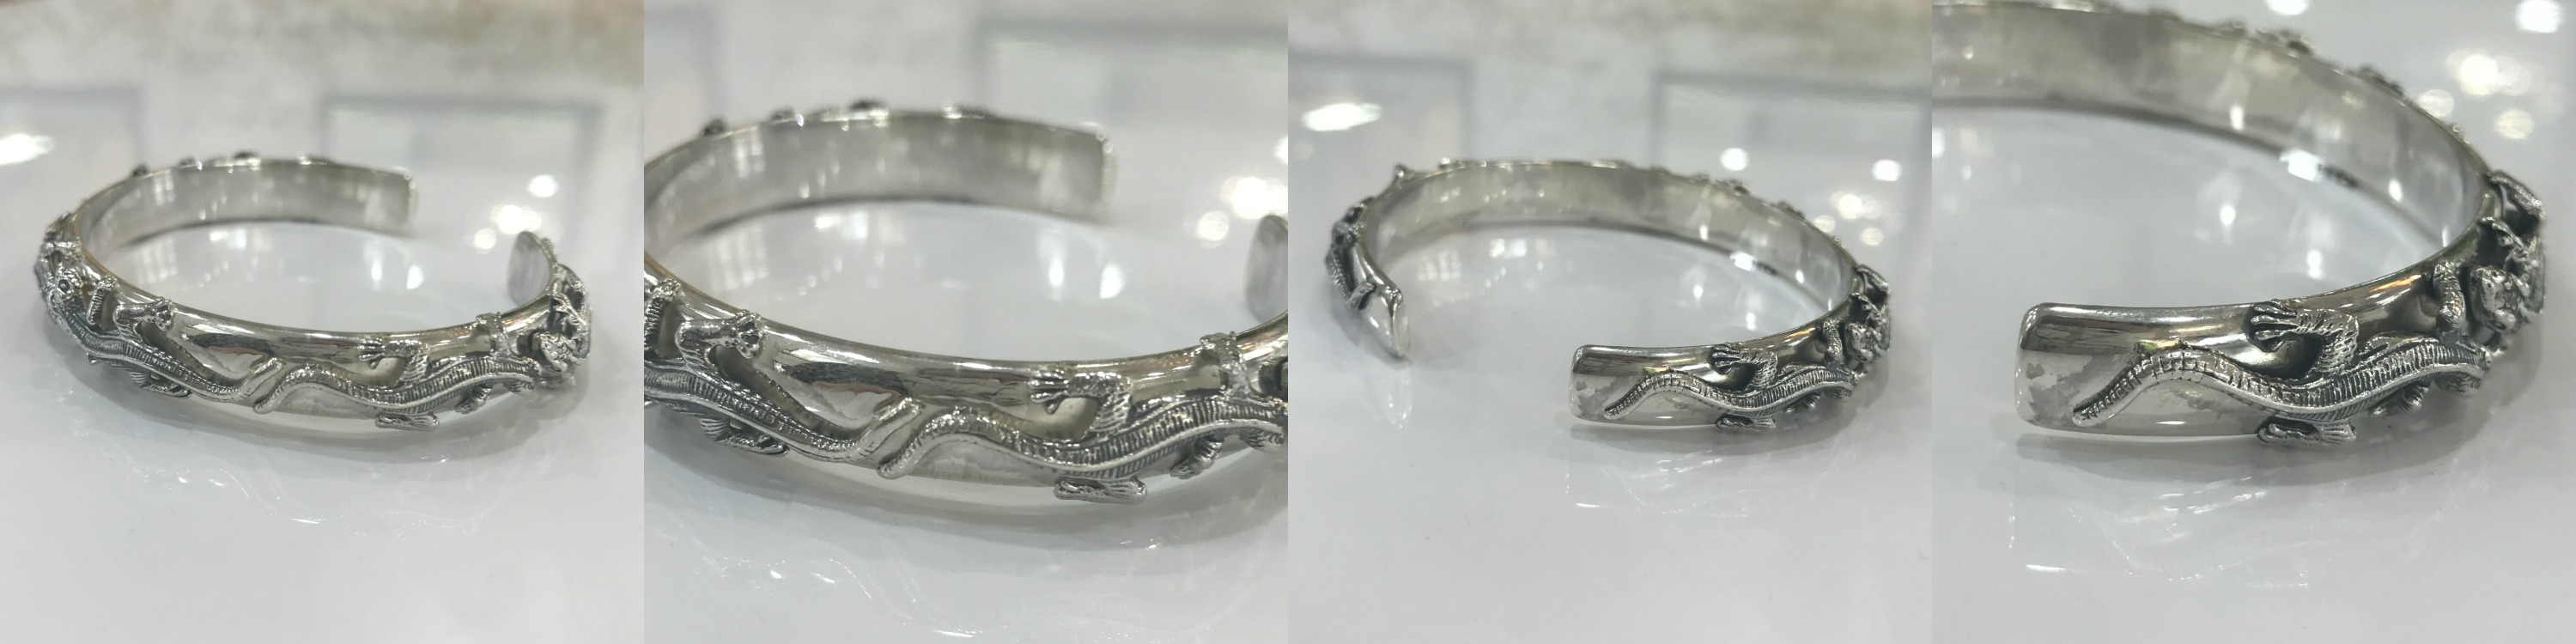 personality rings new stainless jewelry lizard for steel from cool animal party casting moorvan item style in ring rock accessories men s cocktail punk